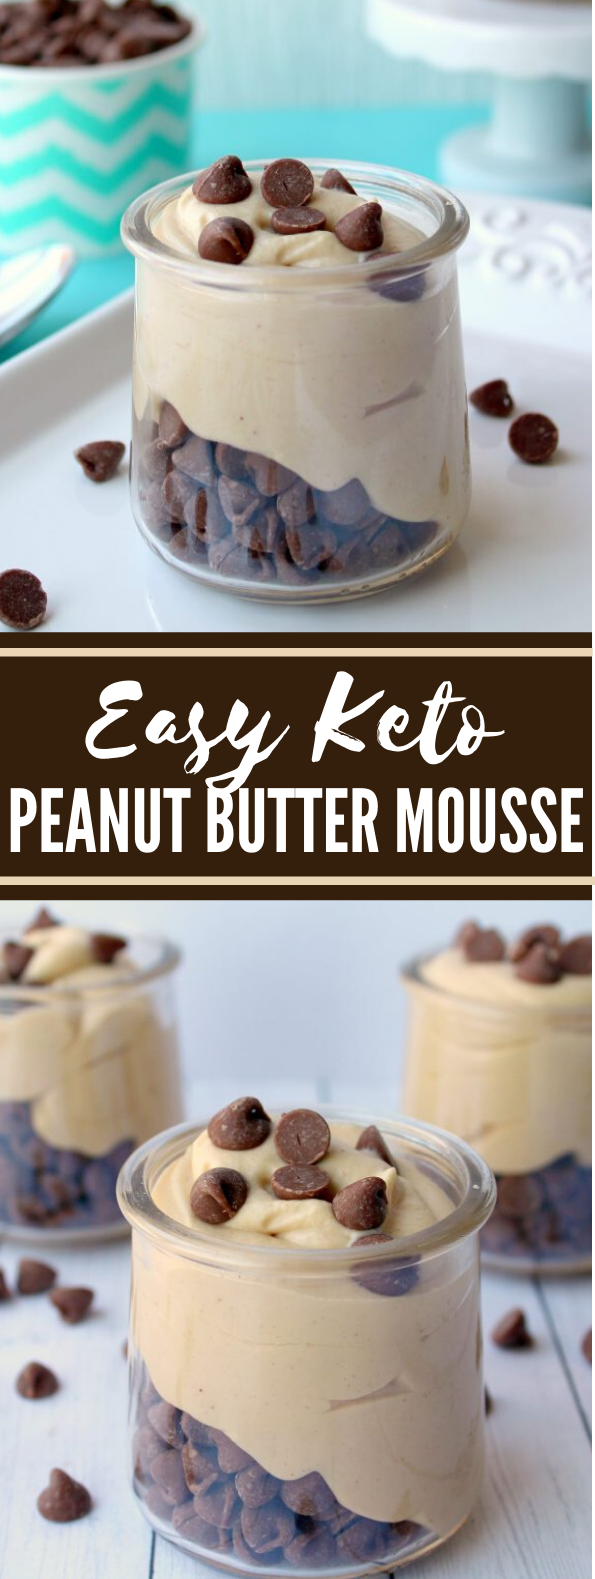 EASY KETO PEANUT BUTTER MOUSSE #healthy #desserts